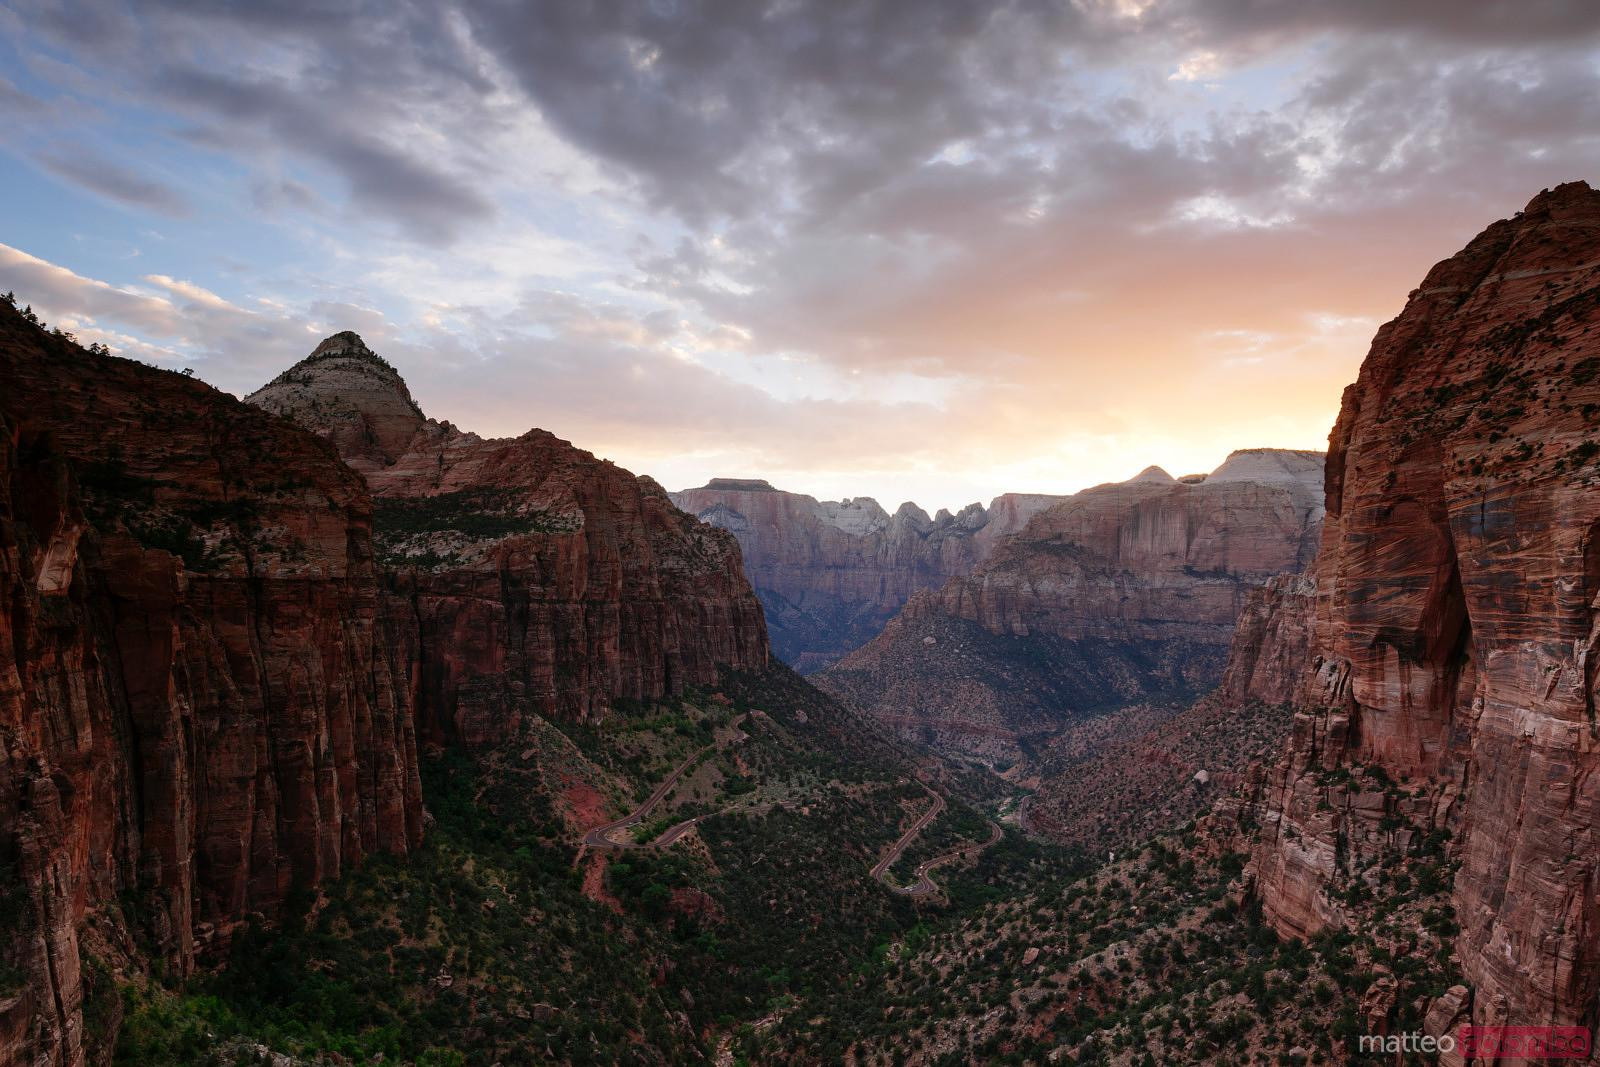 Sunset over valley, Zion Canyon National Park, Utah, USA